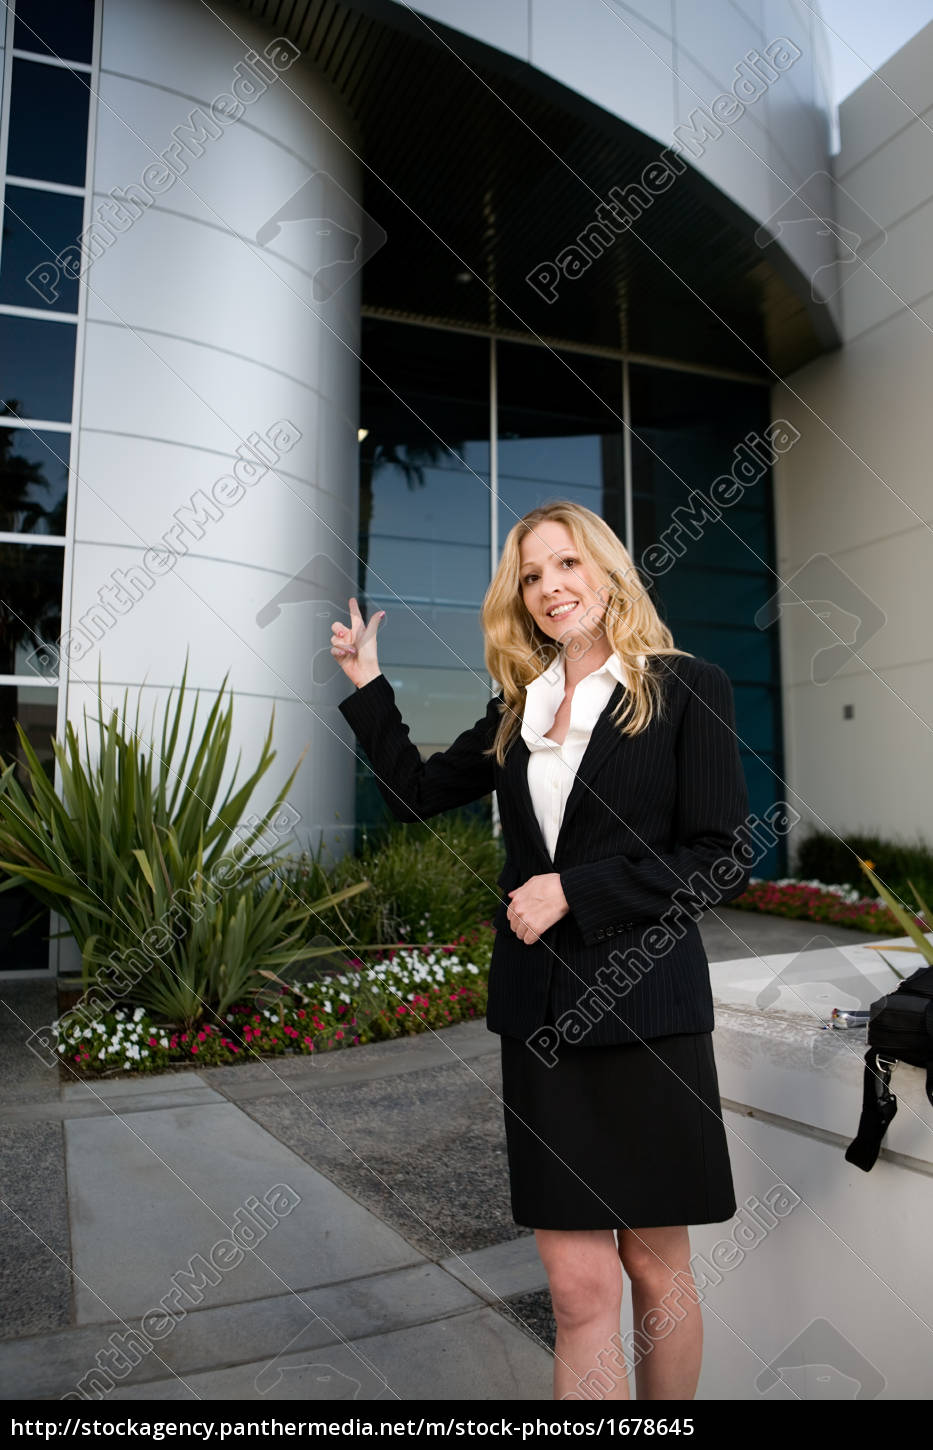 woman, outside, office, building - 1678645